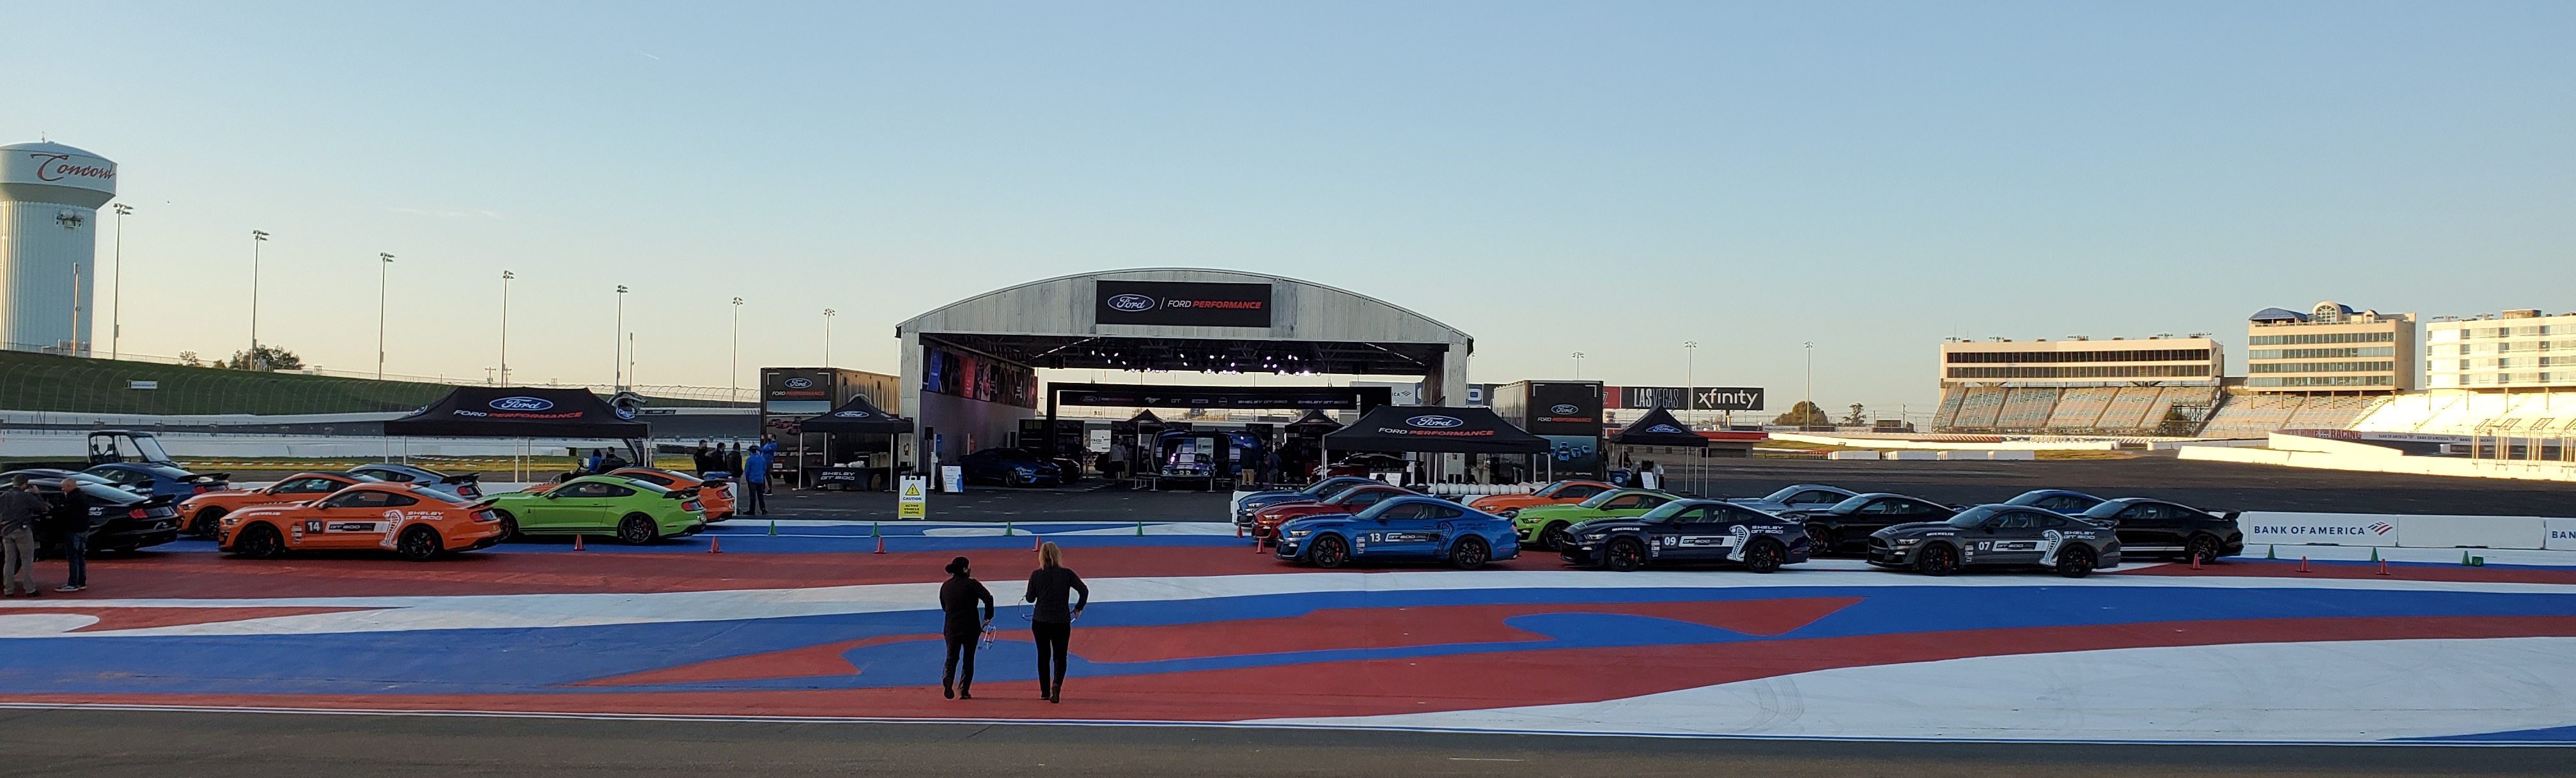 2020 Ford Shelby GT 500 North American Track Tour Charlotte Motor Speedway Oct 19 2020